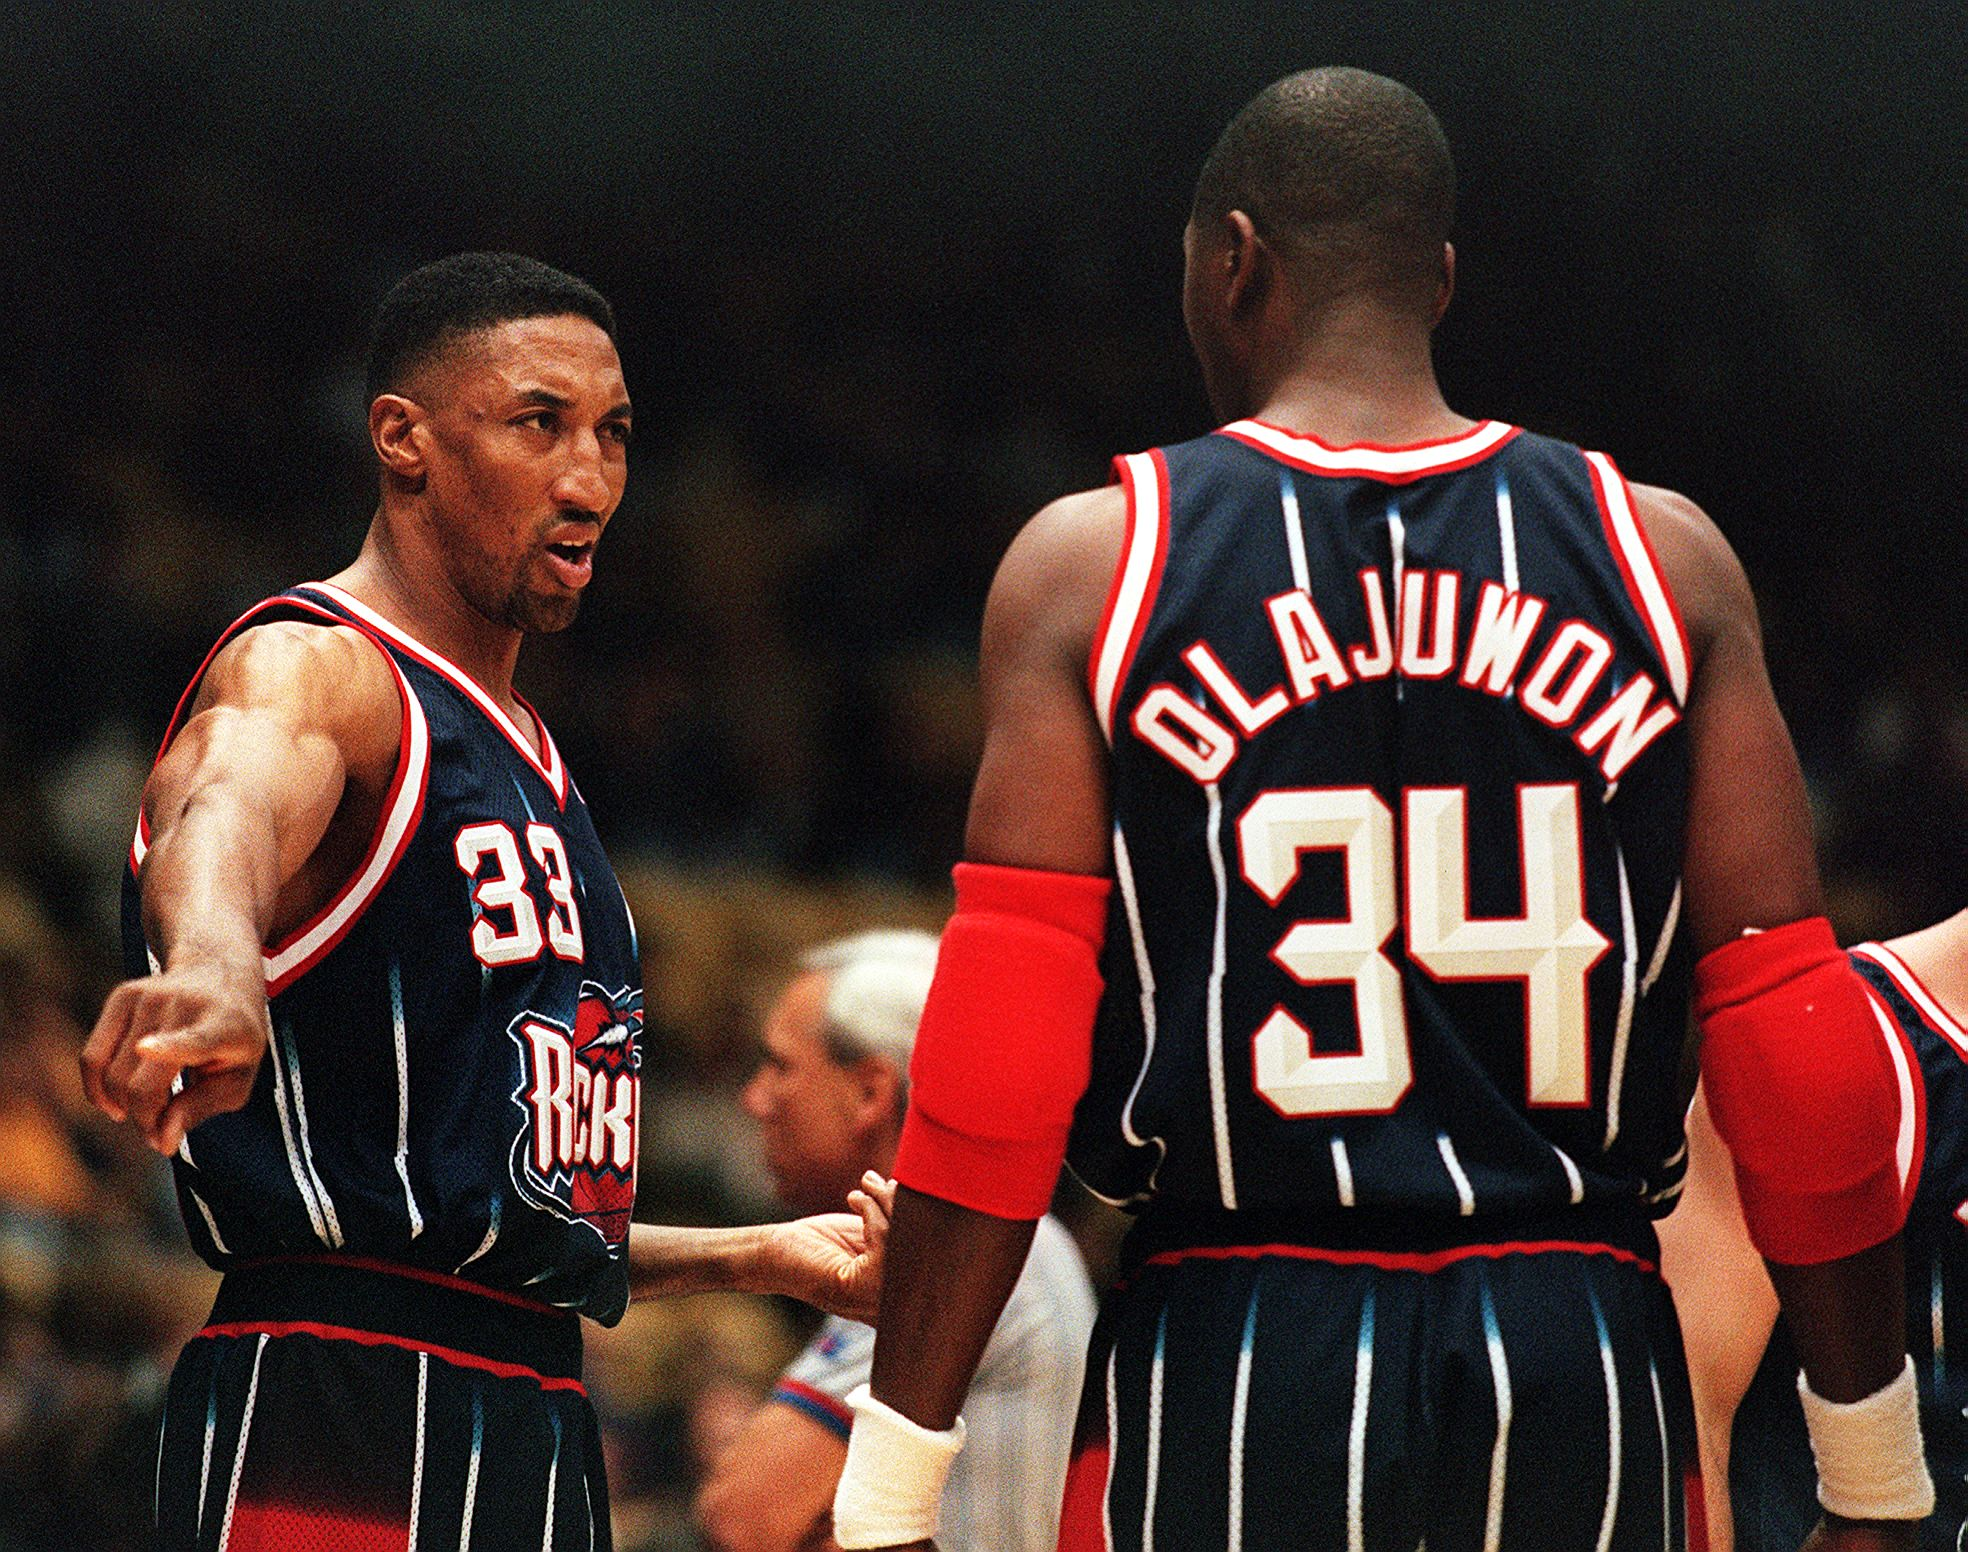 Yes, Scottie Pippen did briefly play for the Houston Rockets